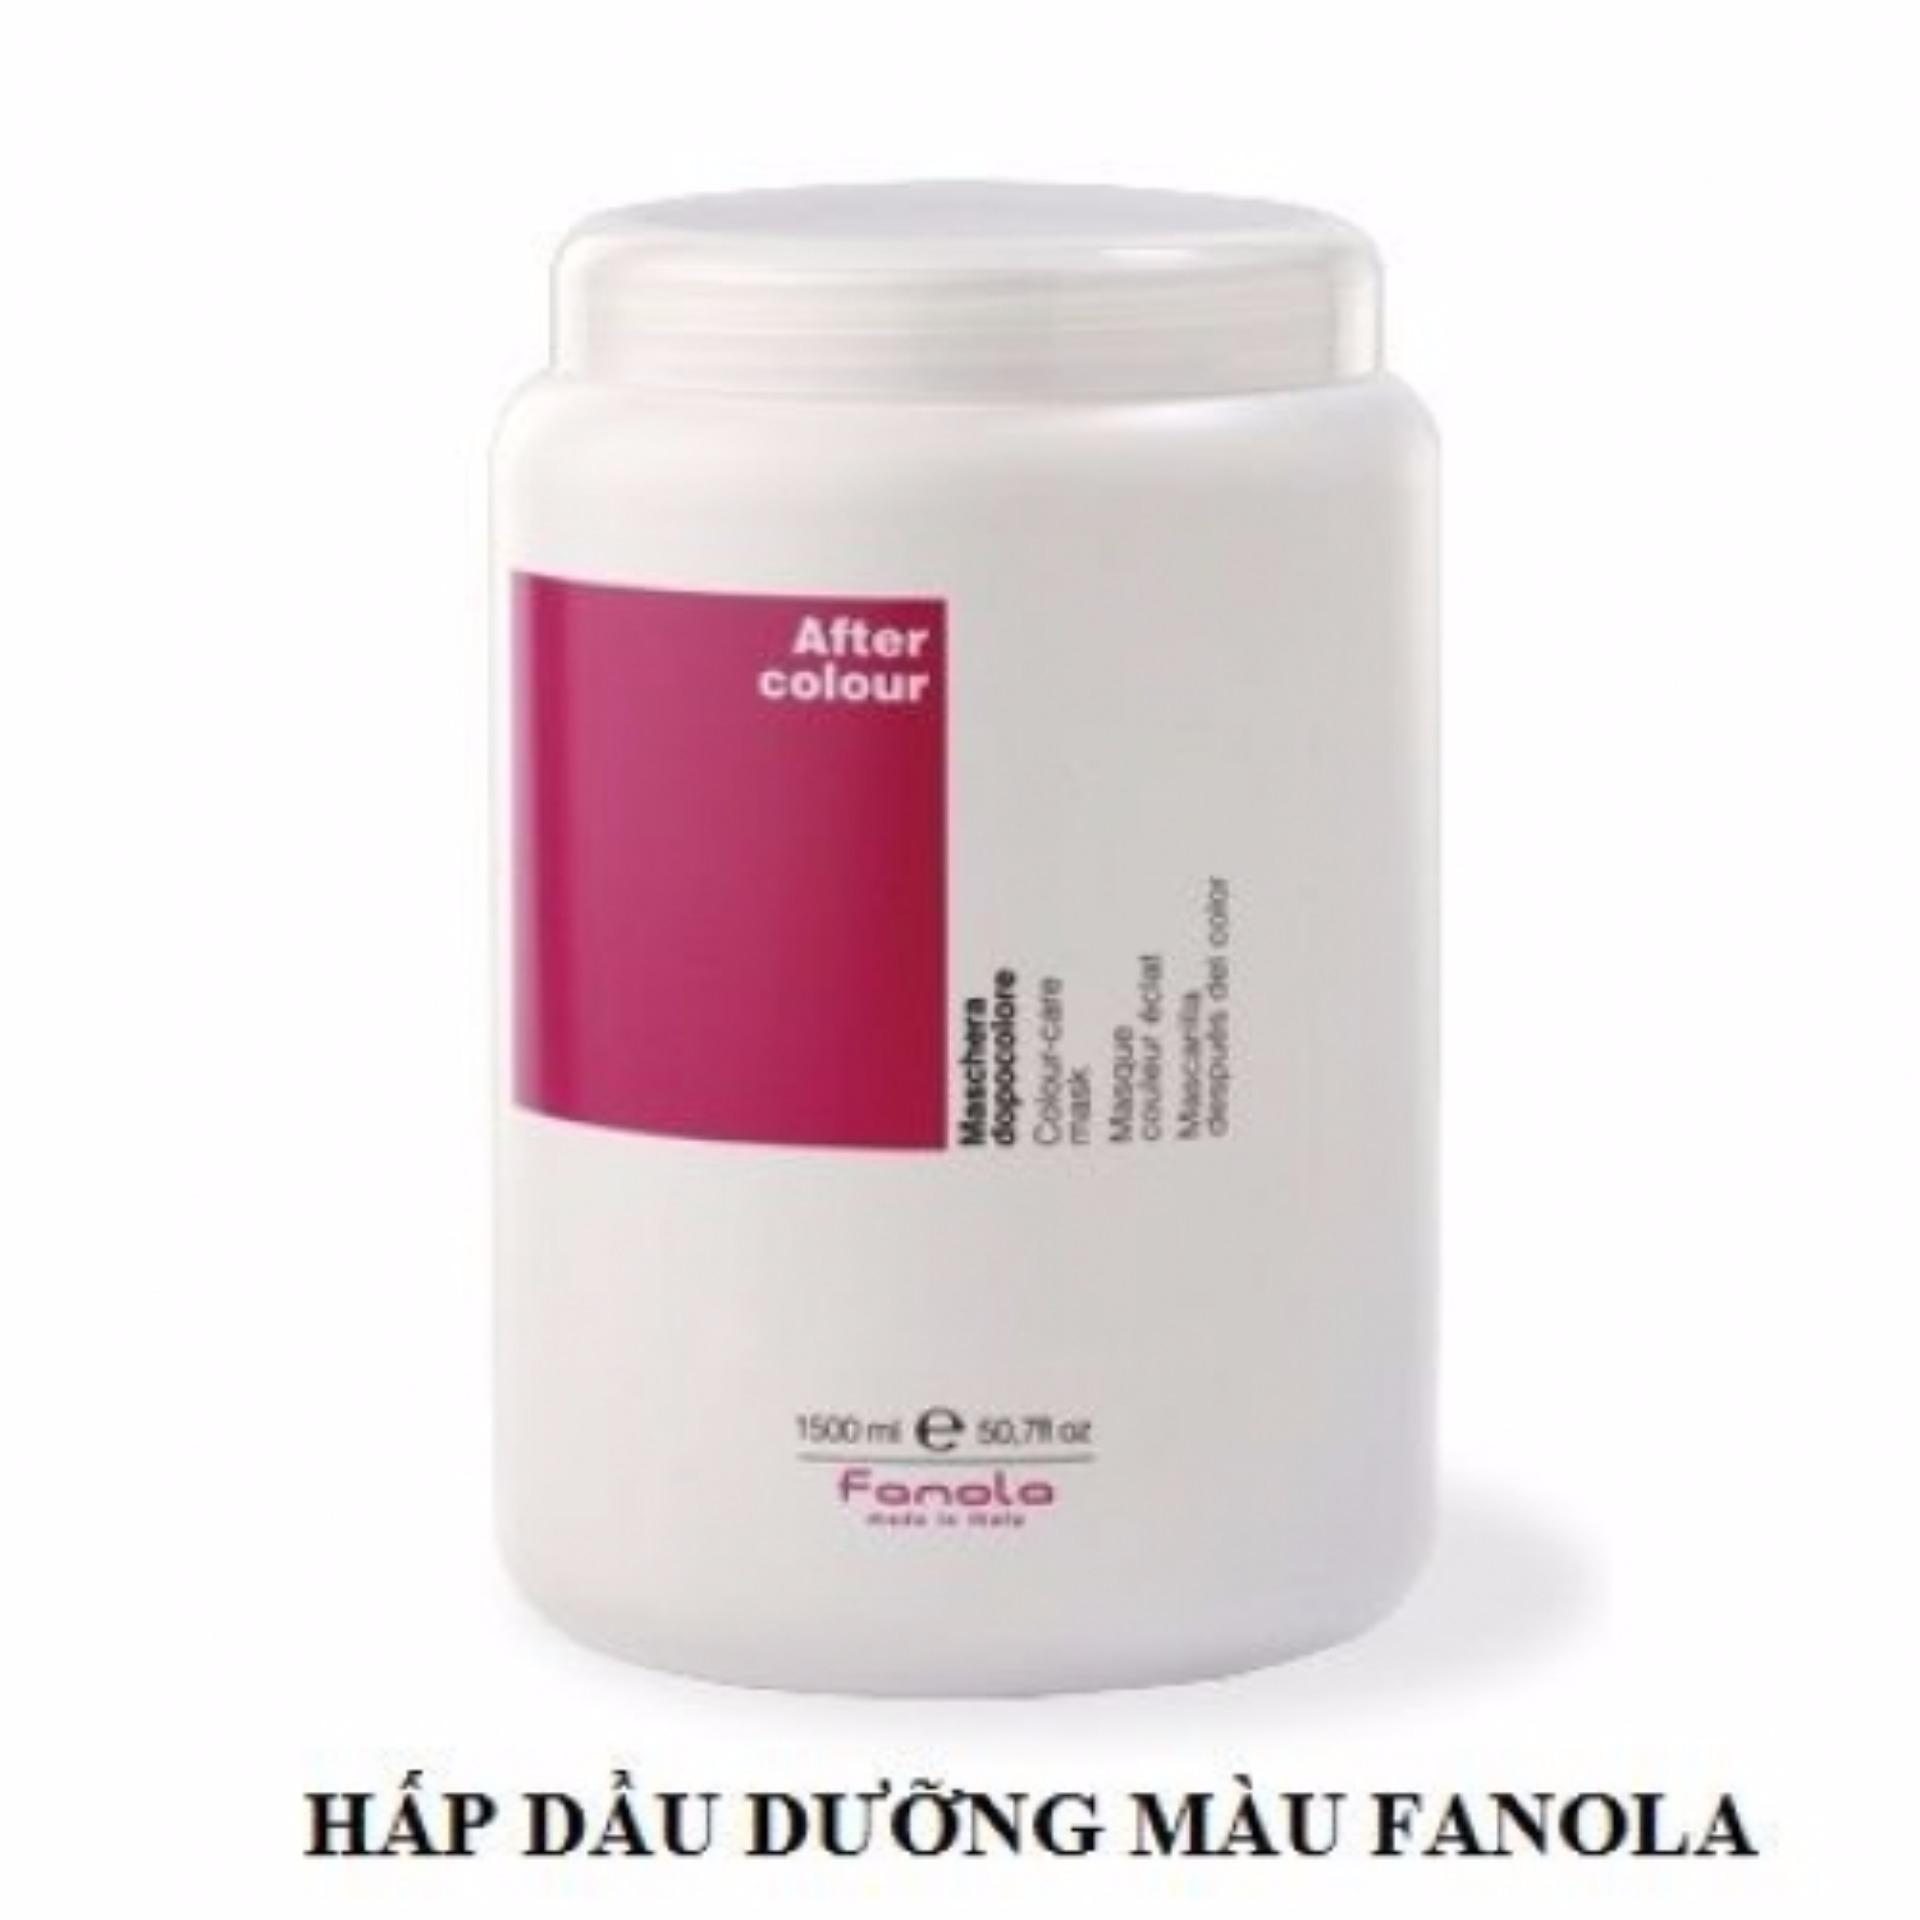 Ủ Tóc Fanola After Colour 1500Ml